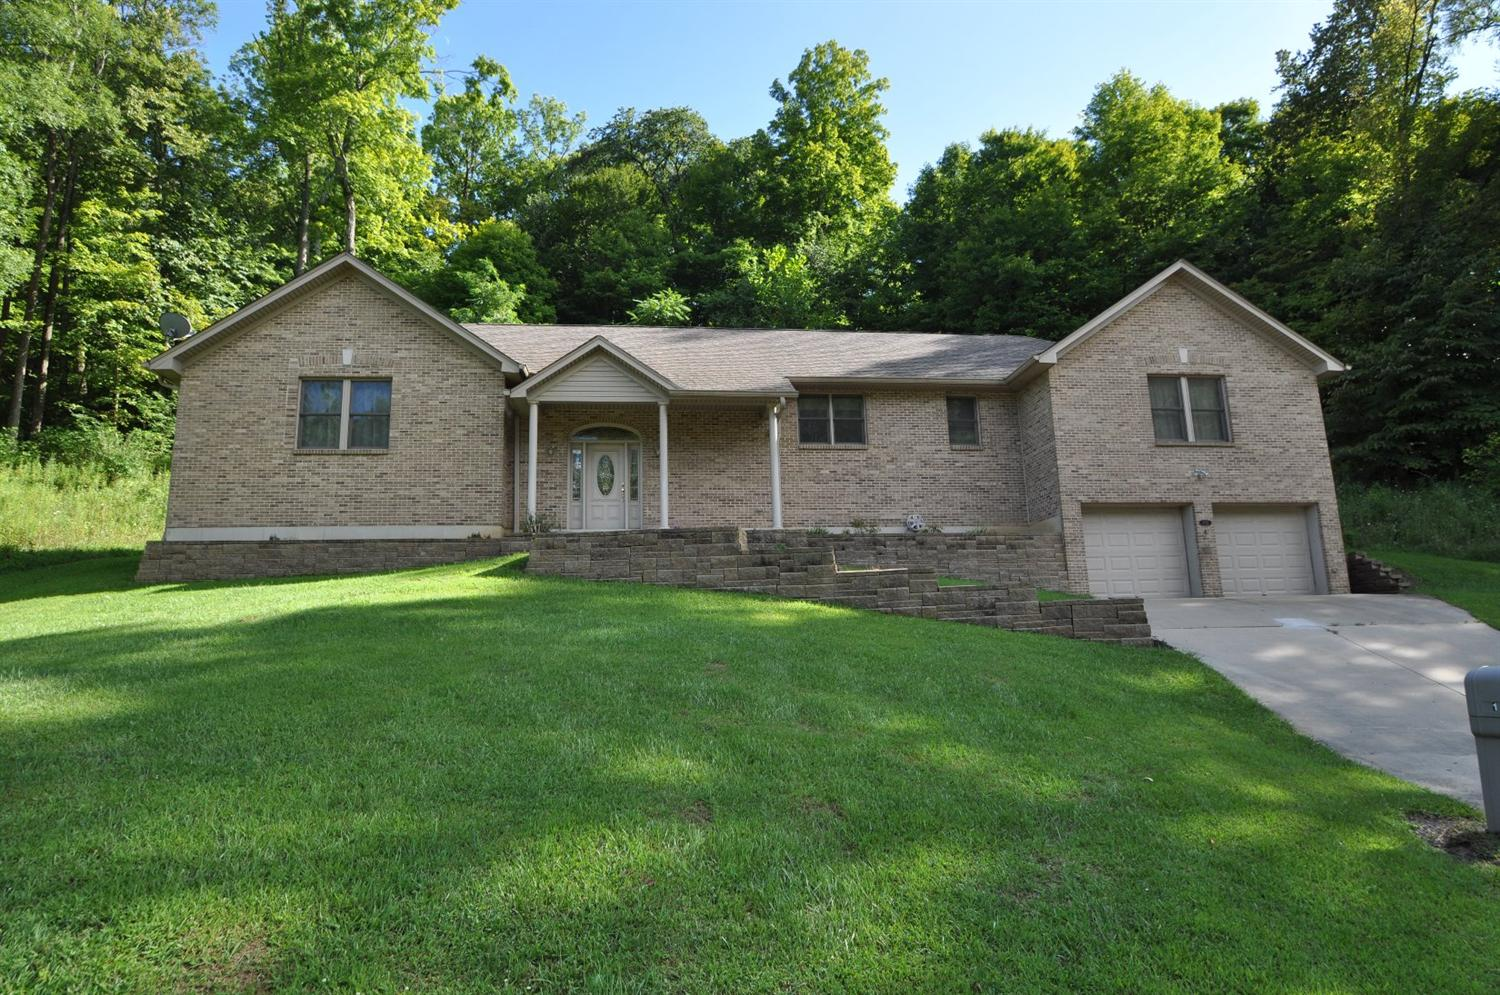 Homes for sale ft mitchell ky ft mitchell real estate for Mitchell homes price list